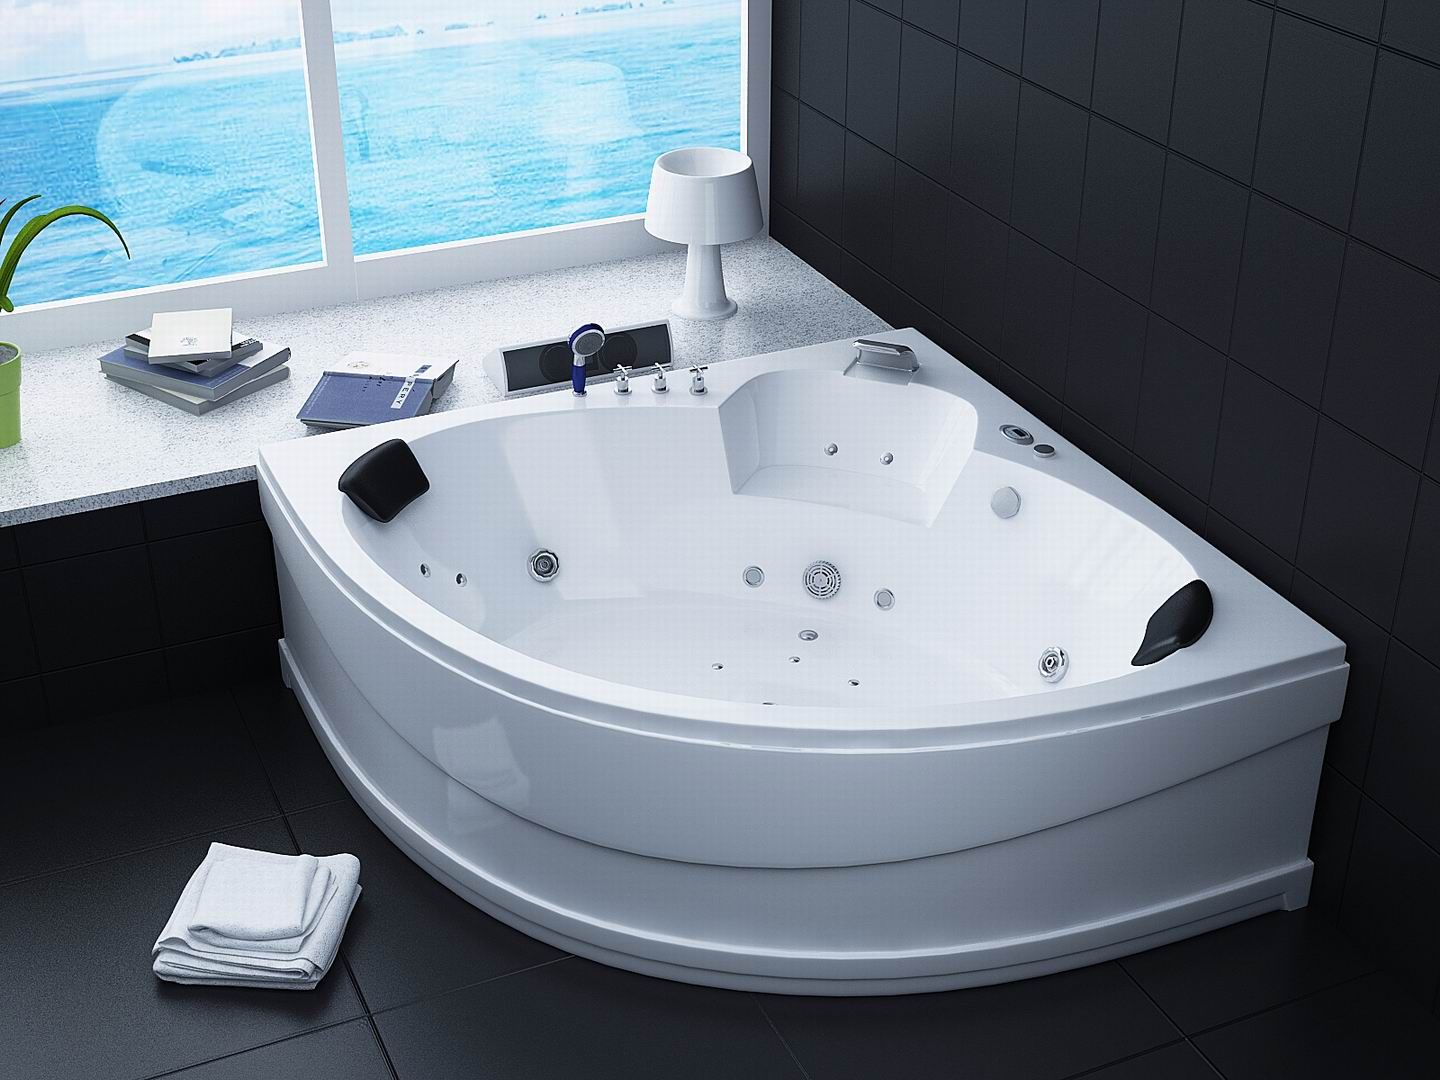 bathtubs | China Jacuzzi Bathtub (MT-NR1801) - large image for Jacu ...